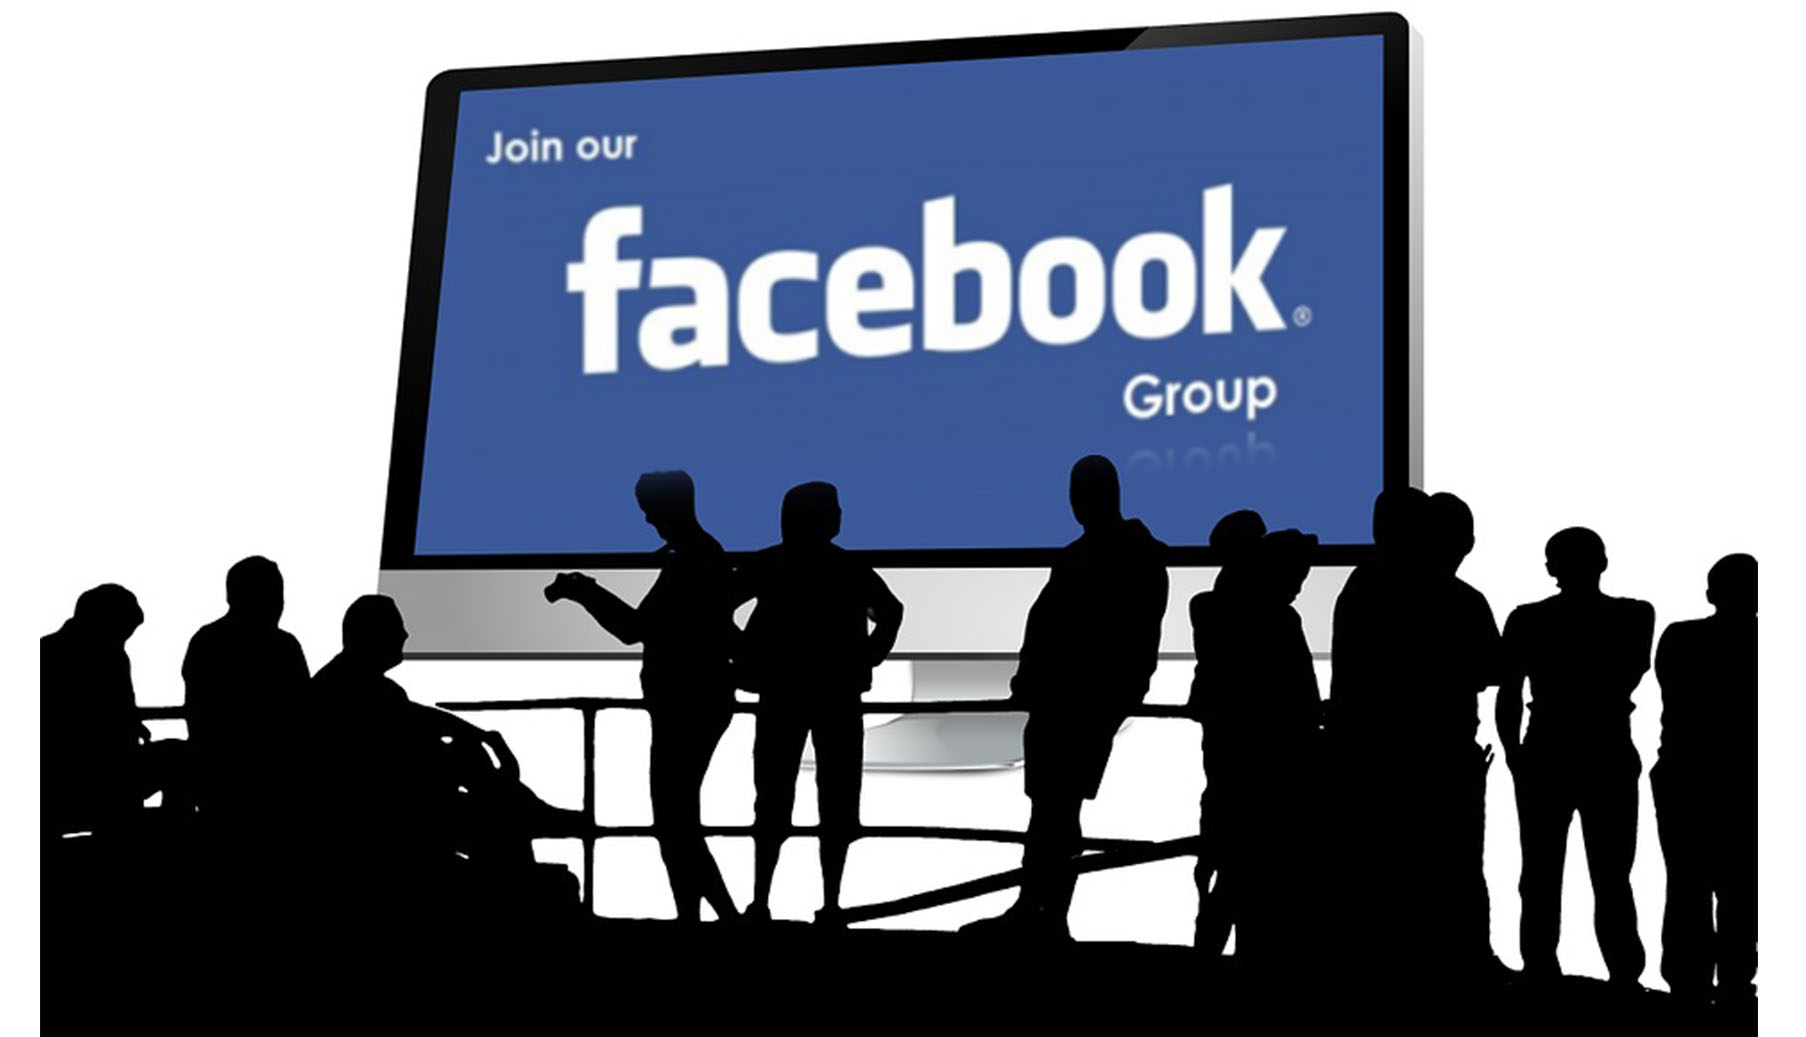 How to Join Facebook Group - How to Leave a Facebook Group